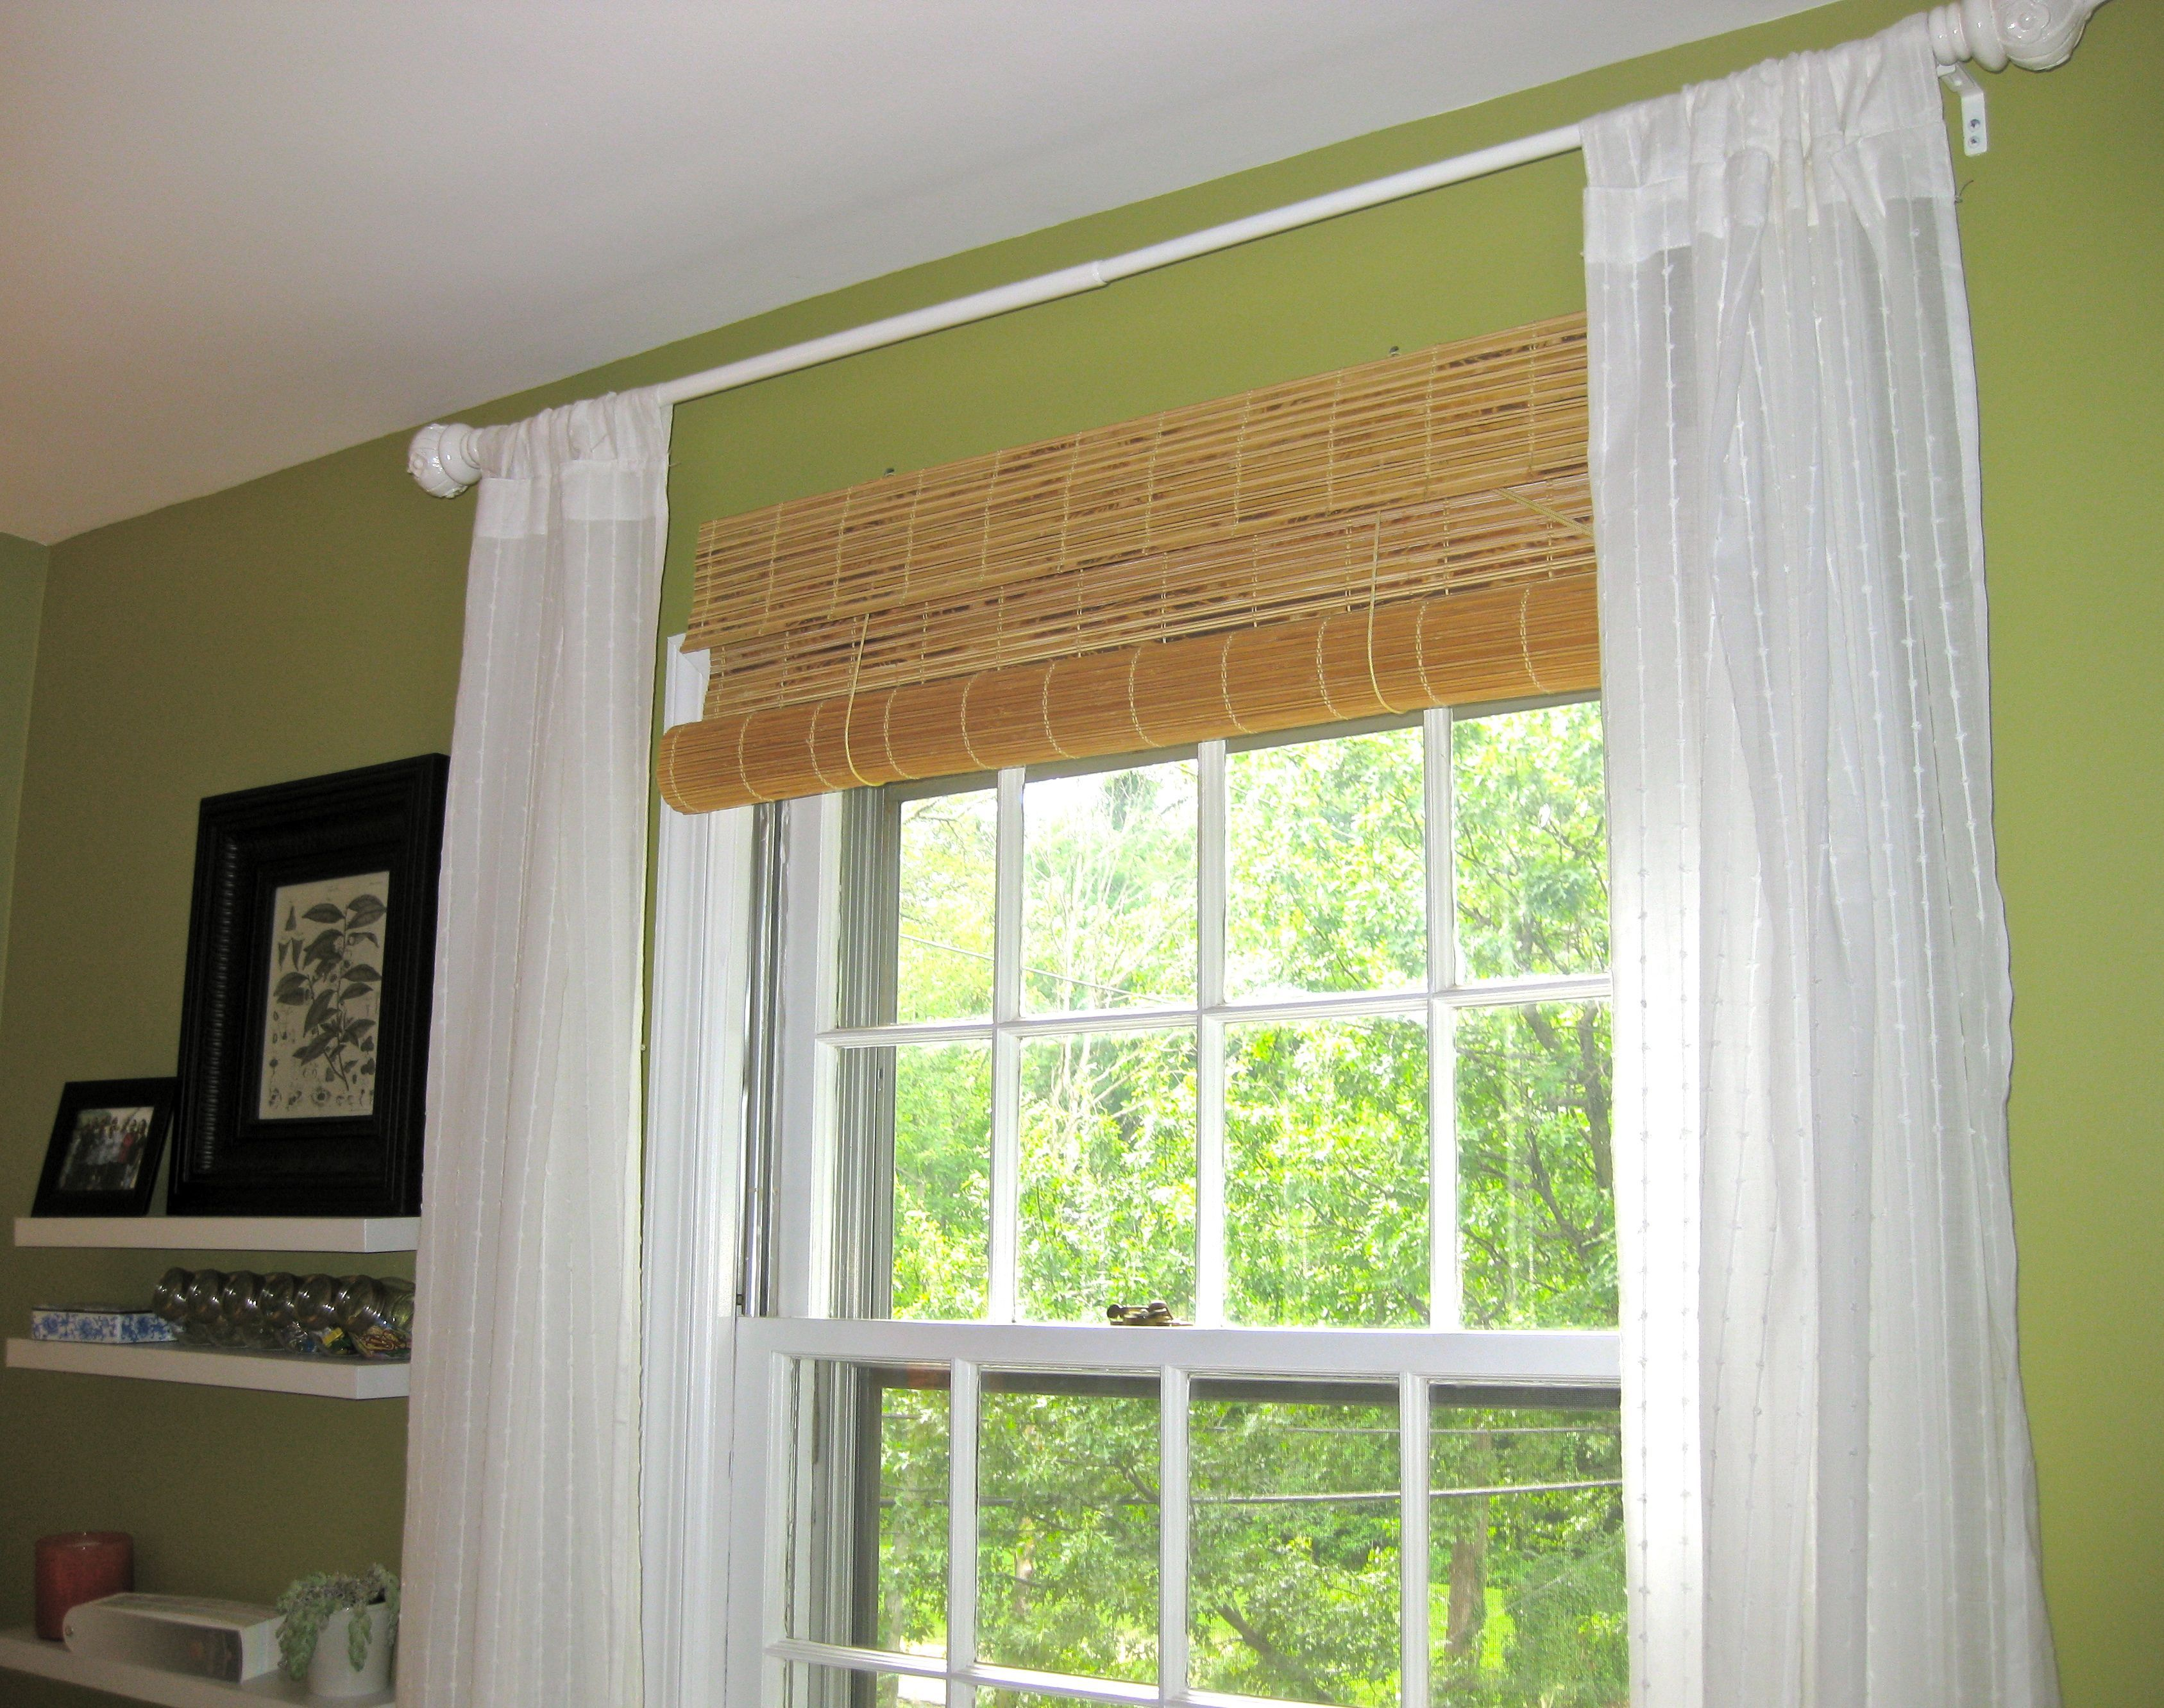 Classy Hanging Bamboo Roller Outside Mount Blinds With